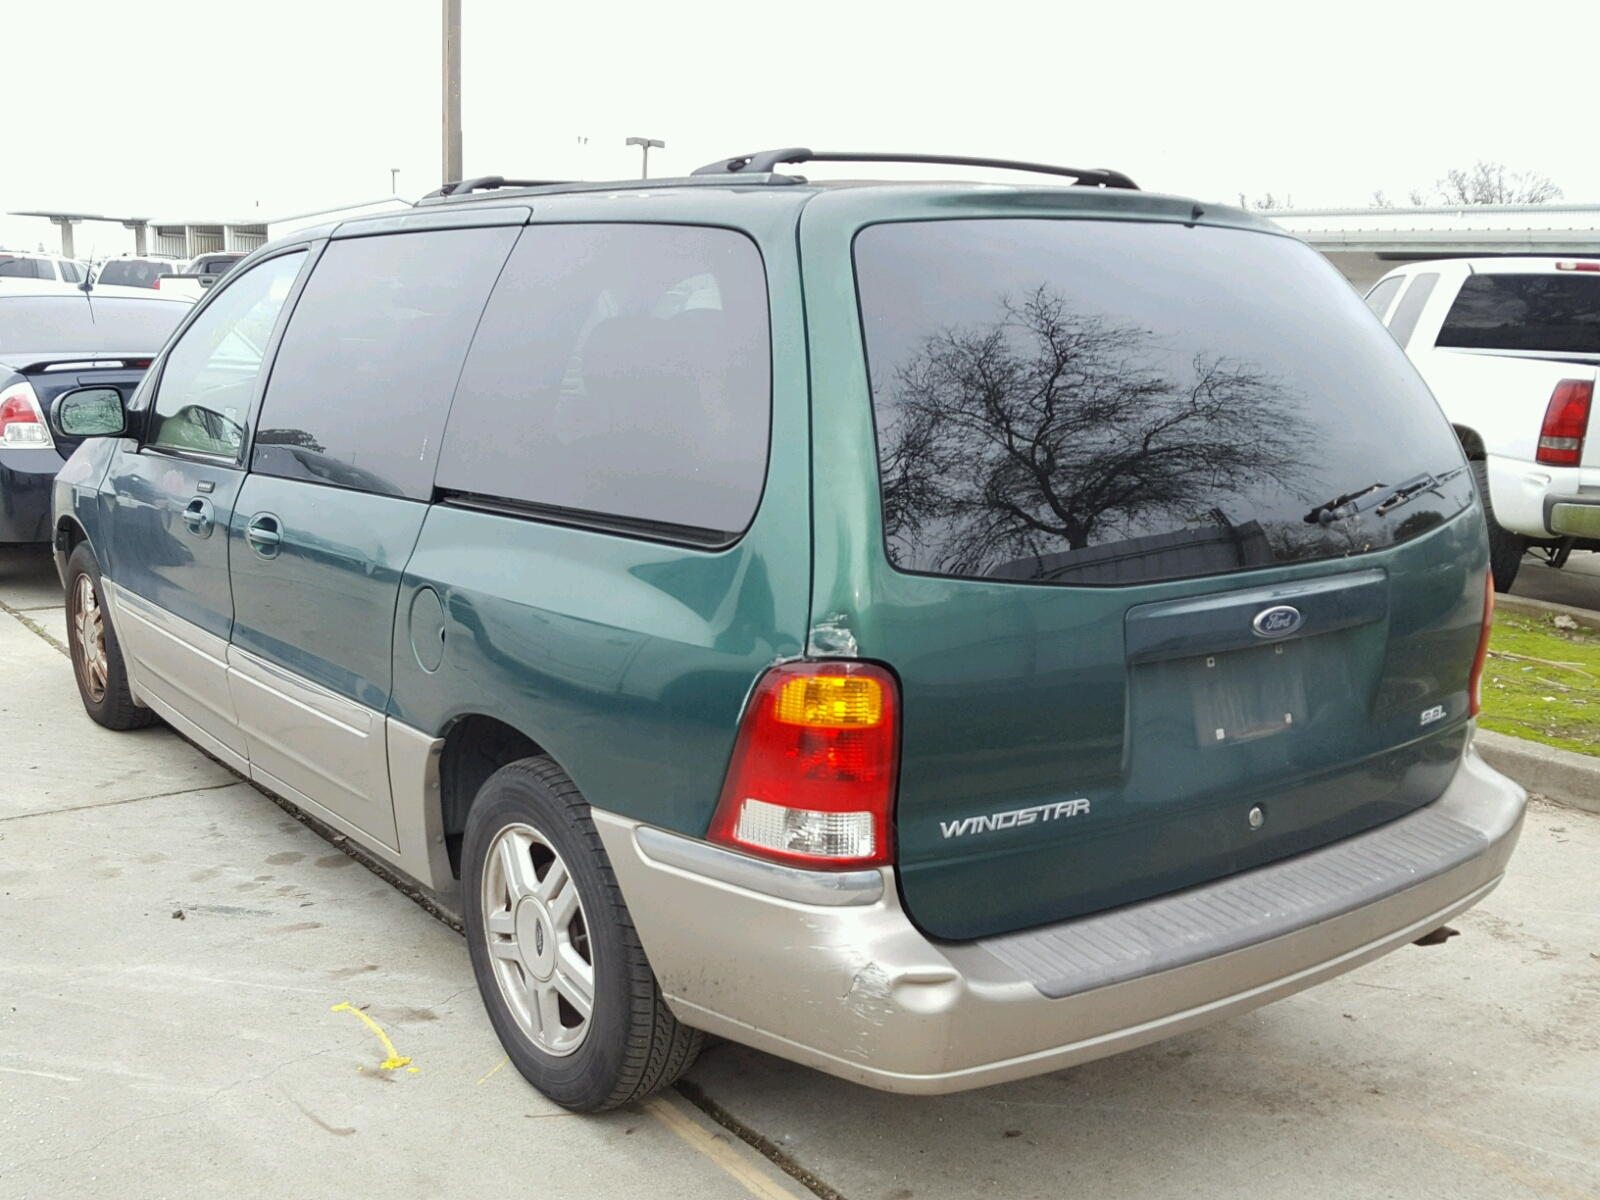 2003 Ford Windstar S Front End Damage 2fmza564x3bb62731 Sold Sel 3